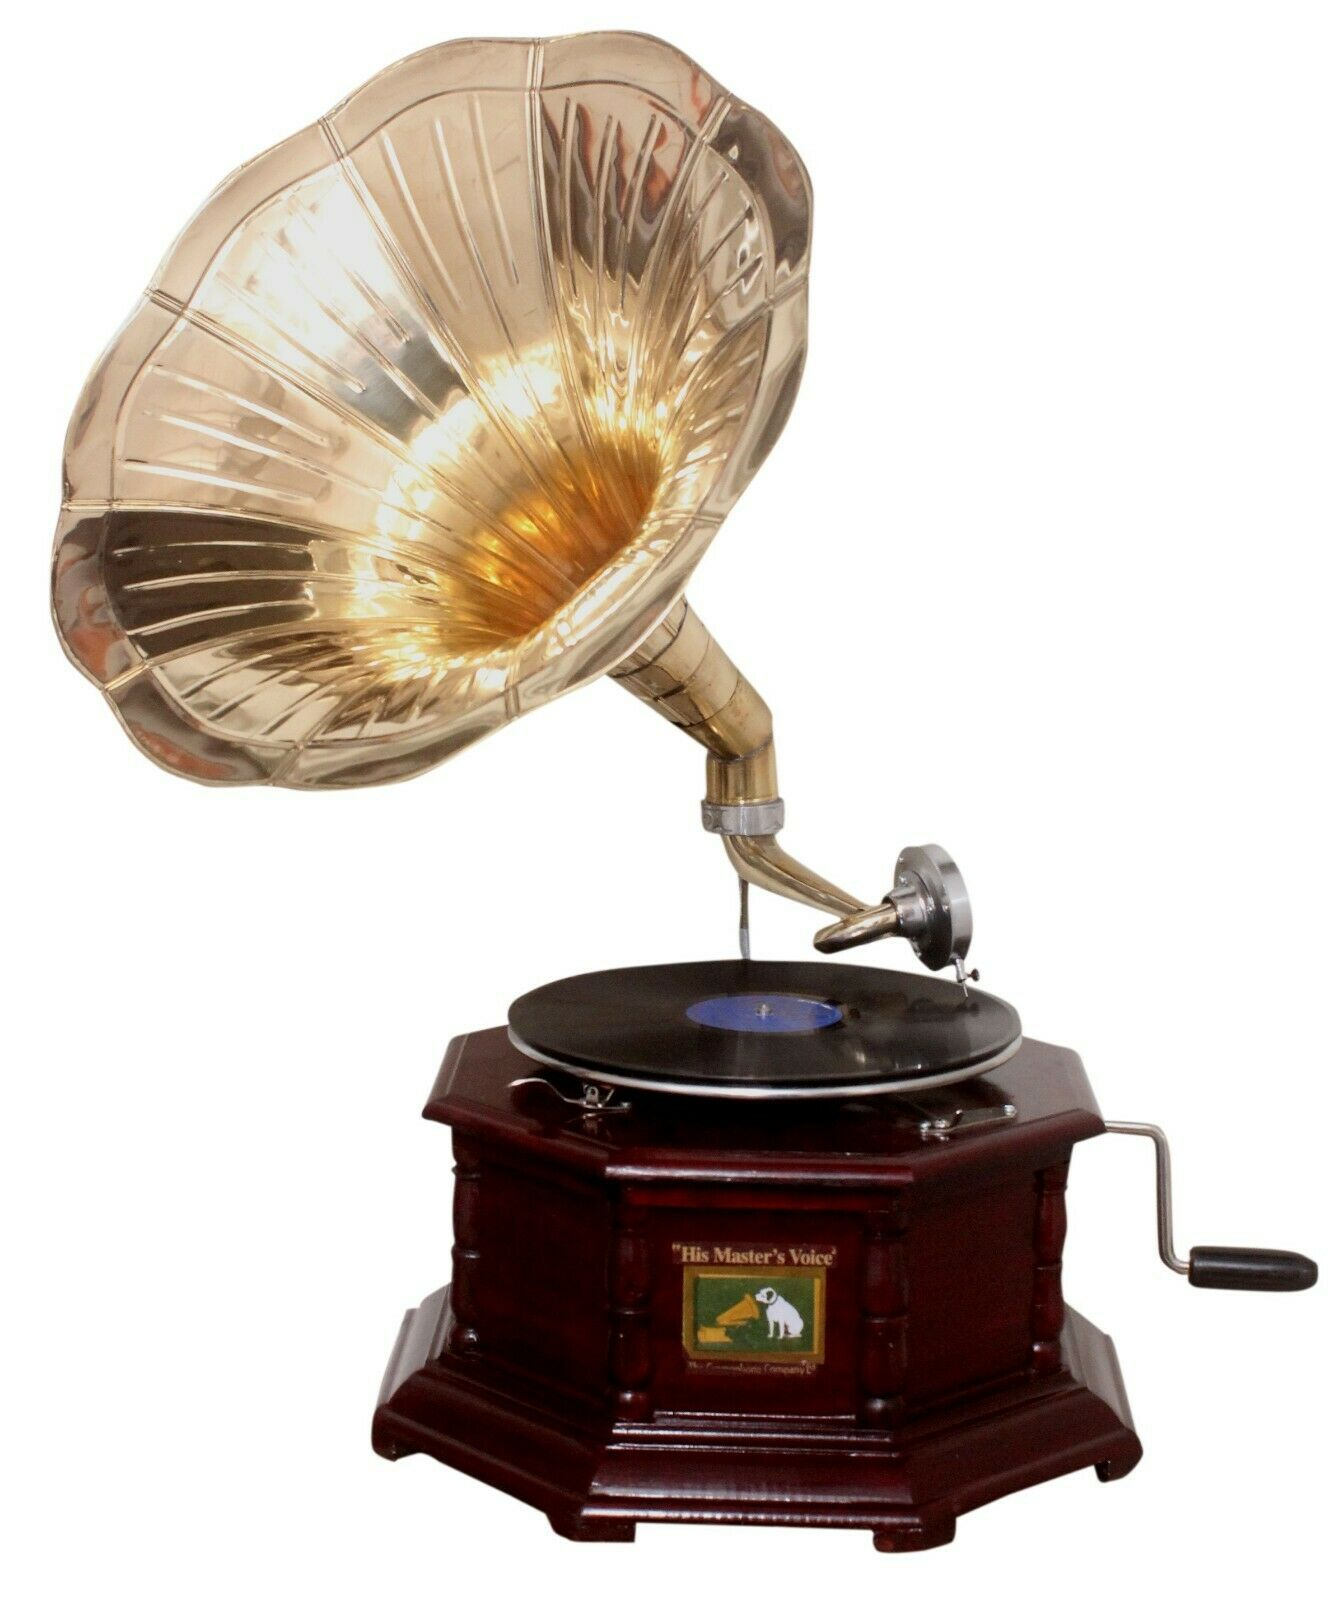 Replica Gramophone Player 78 Rpm Hex Phonograph Brass Horn